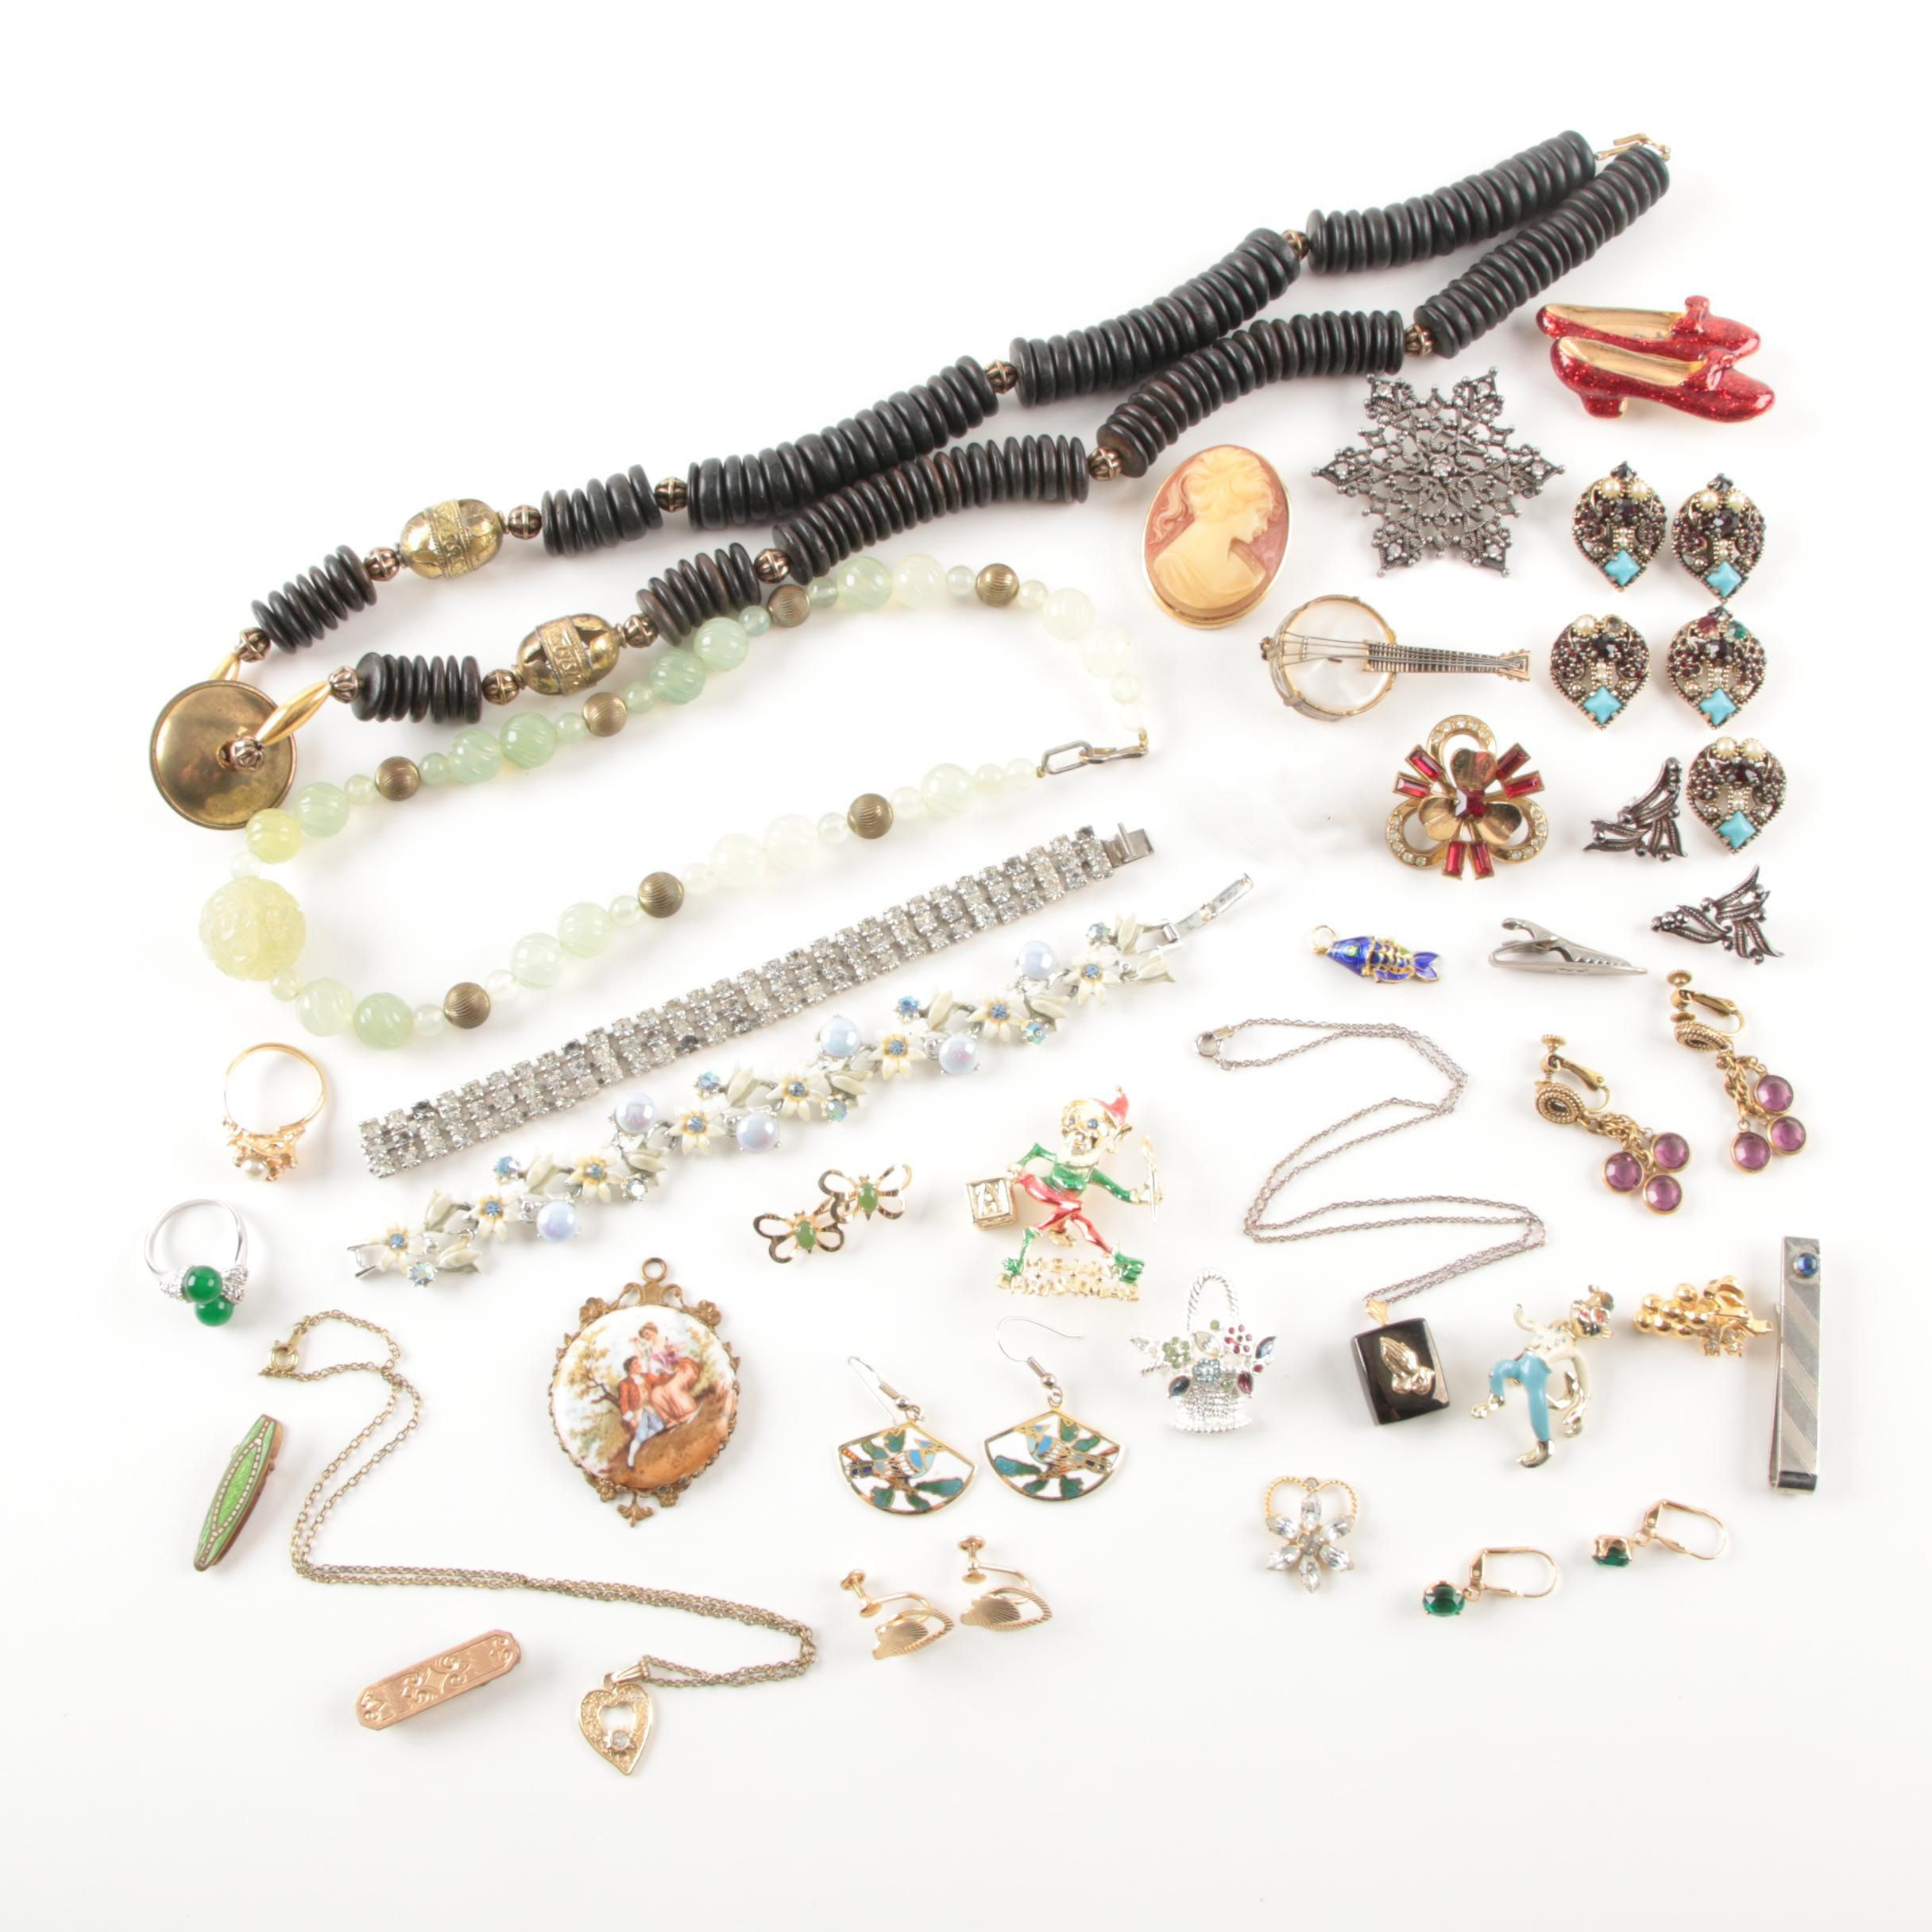 Holly Craft and Napier Jewelry Selection Featuring Mother of Pearl and Jadeite